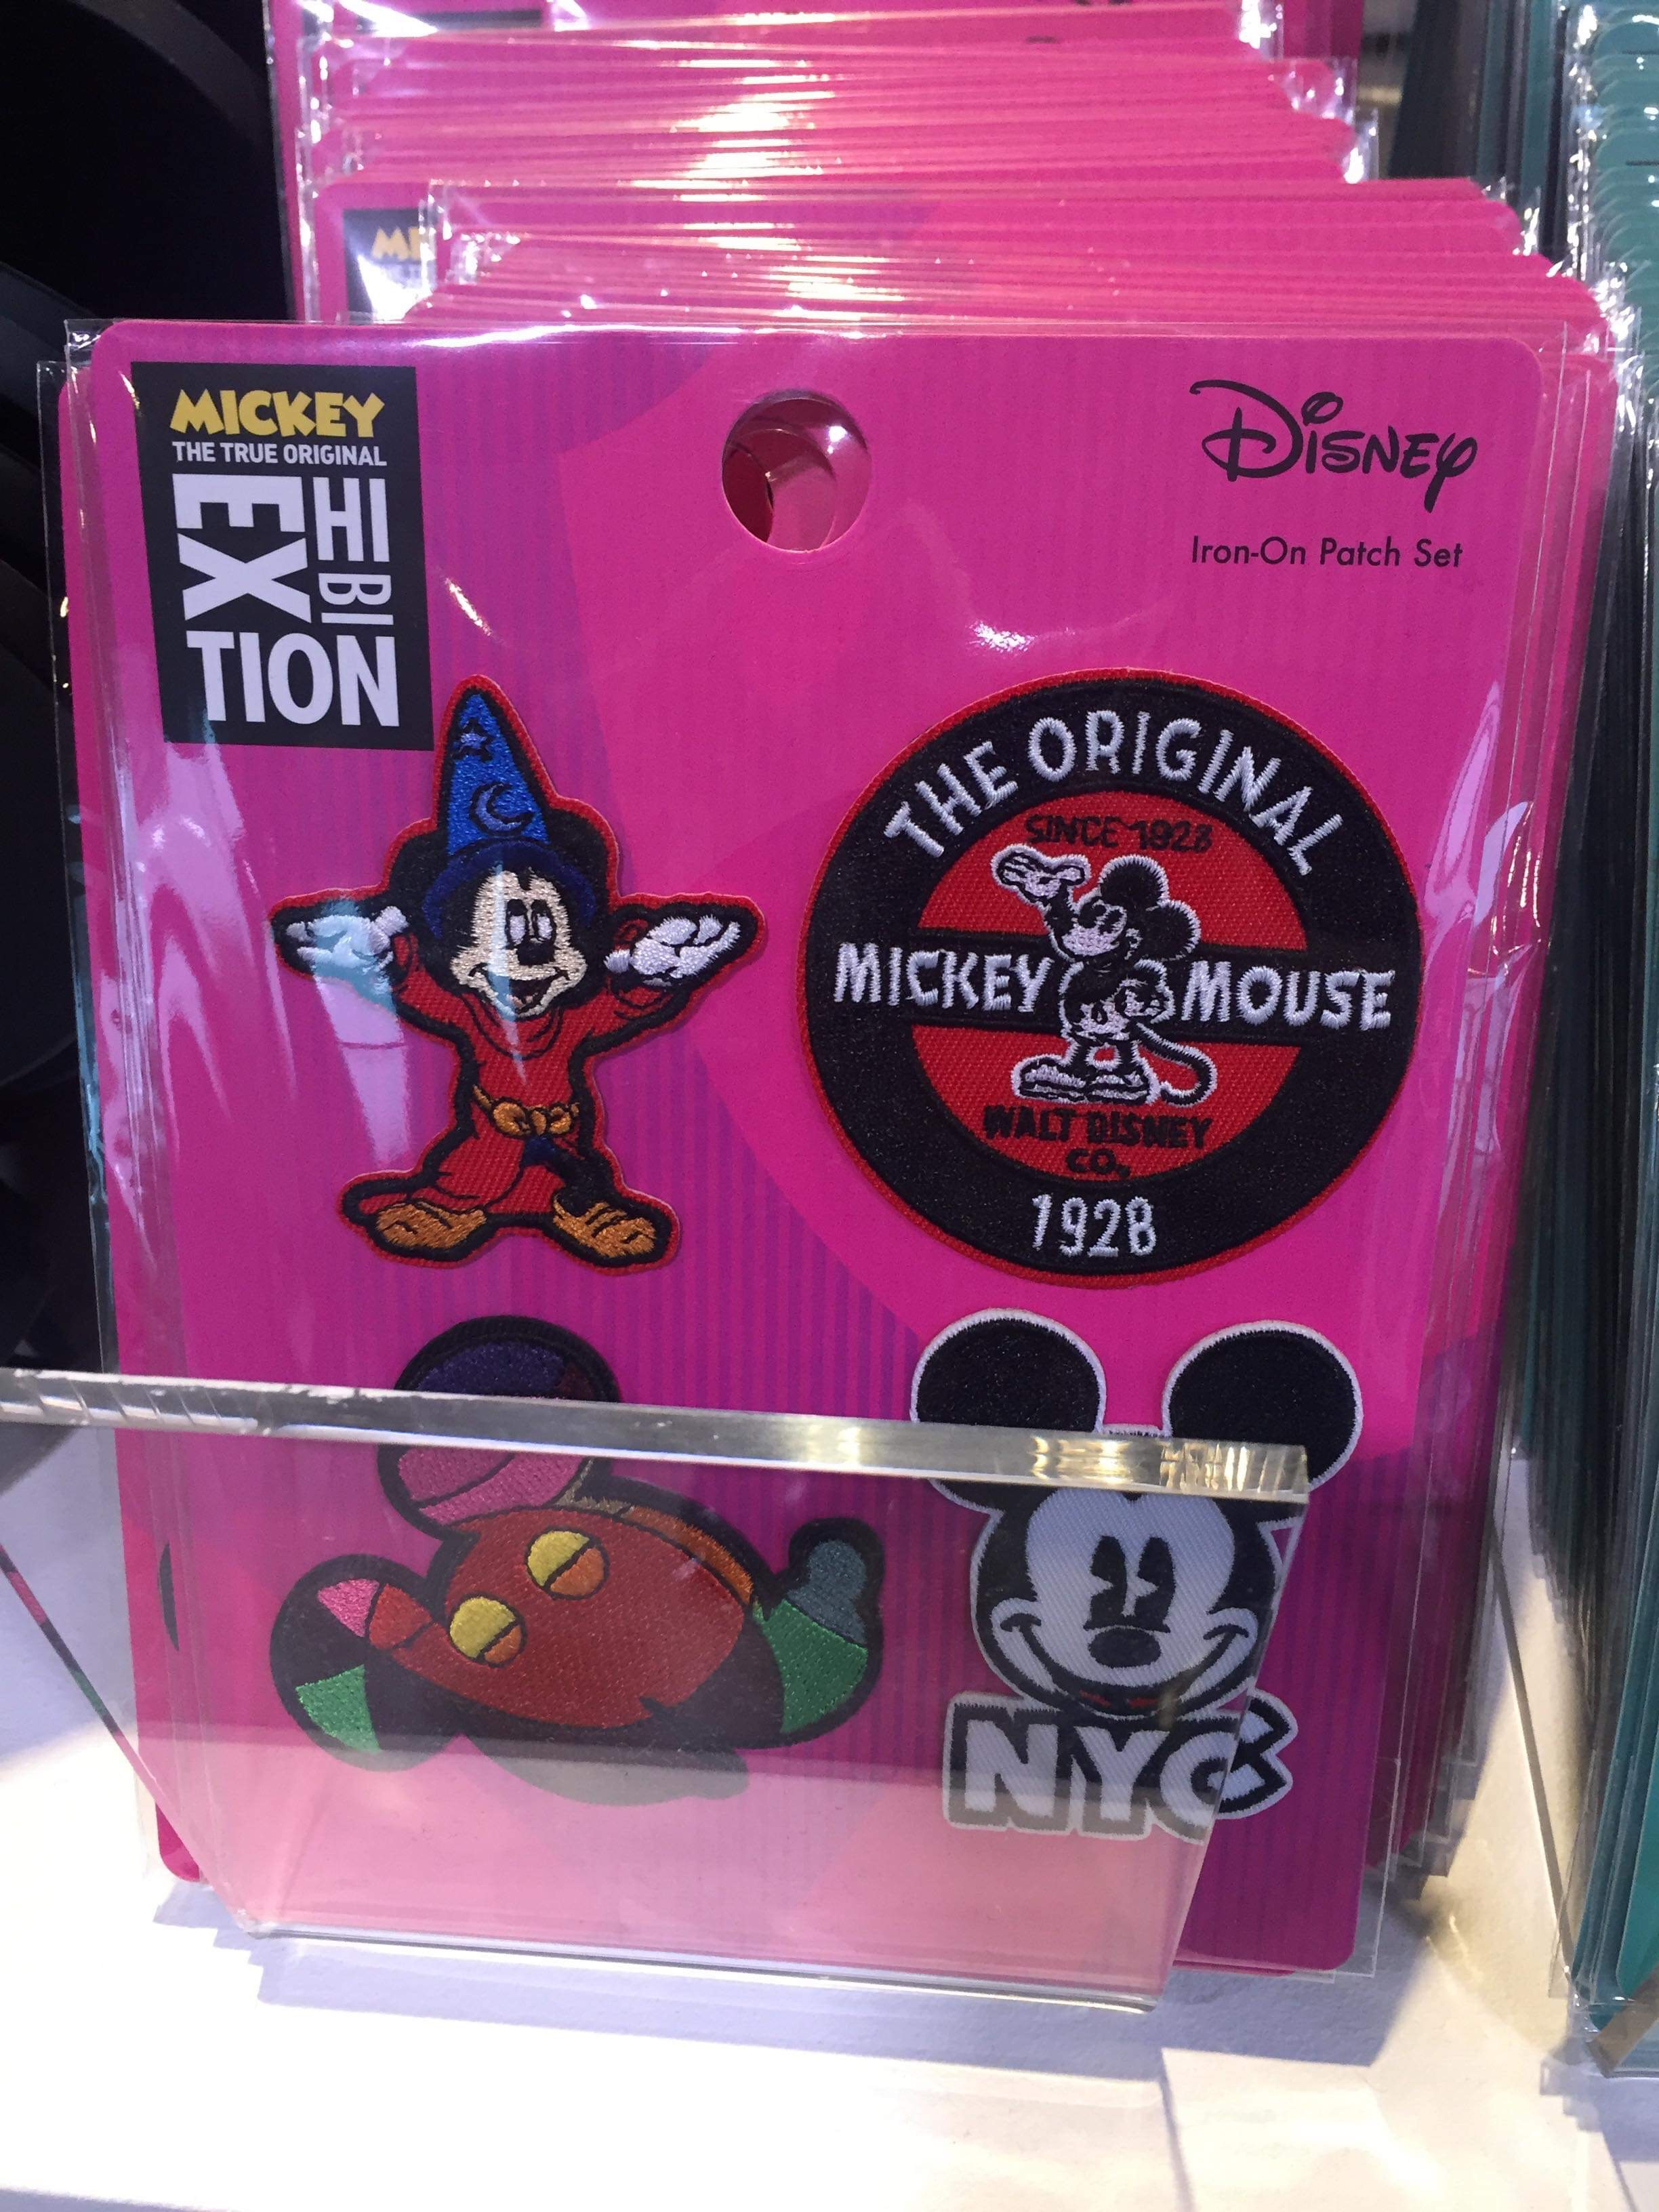 Mickey Mouse 90th Anniversary Exhibit Merchandise Preview